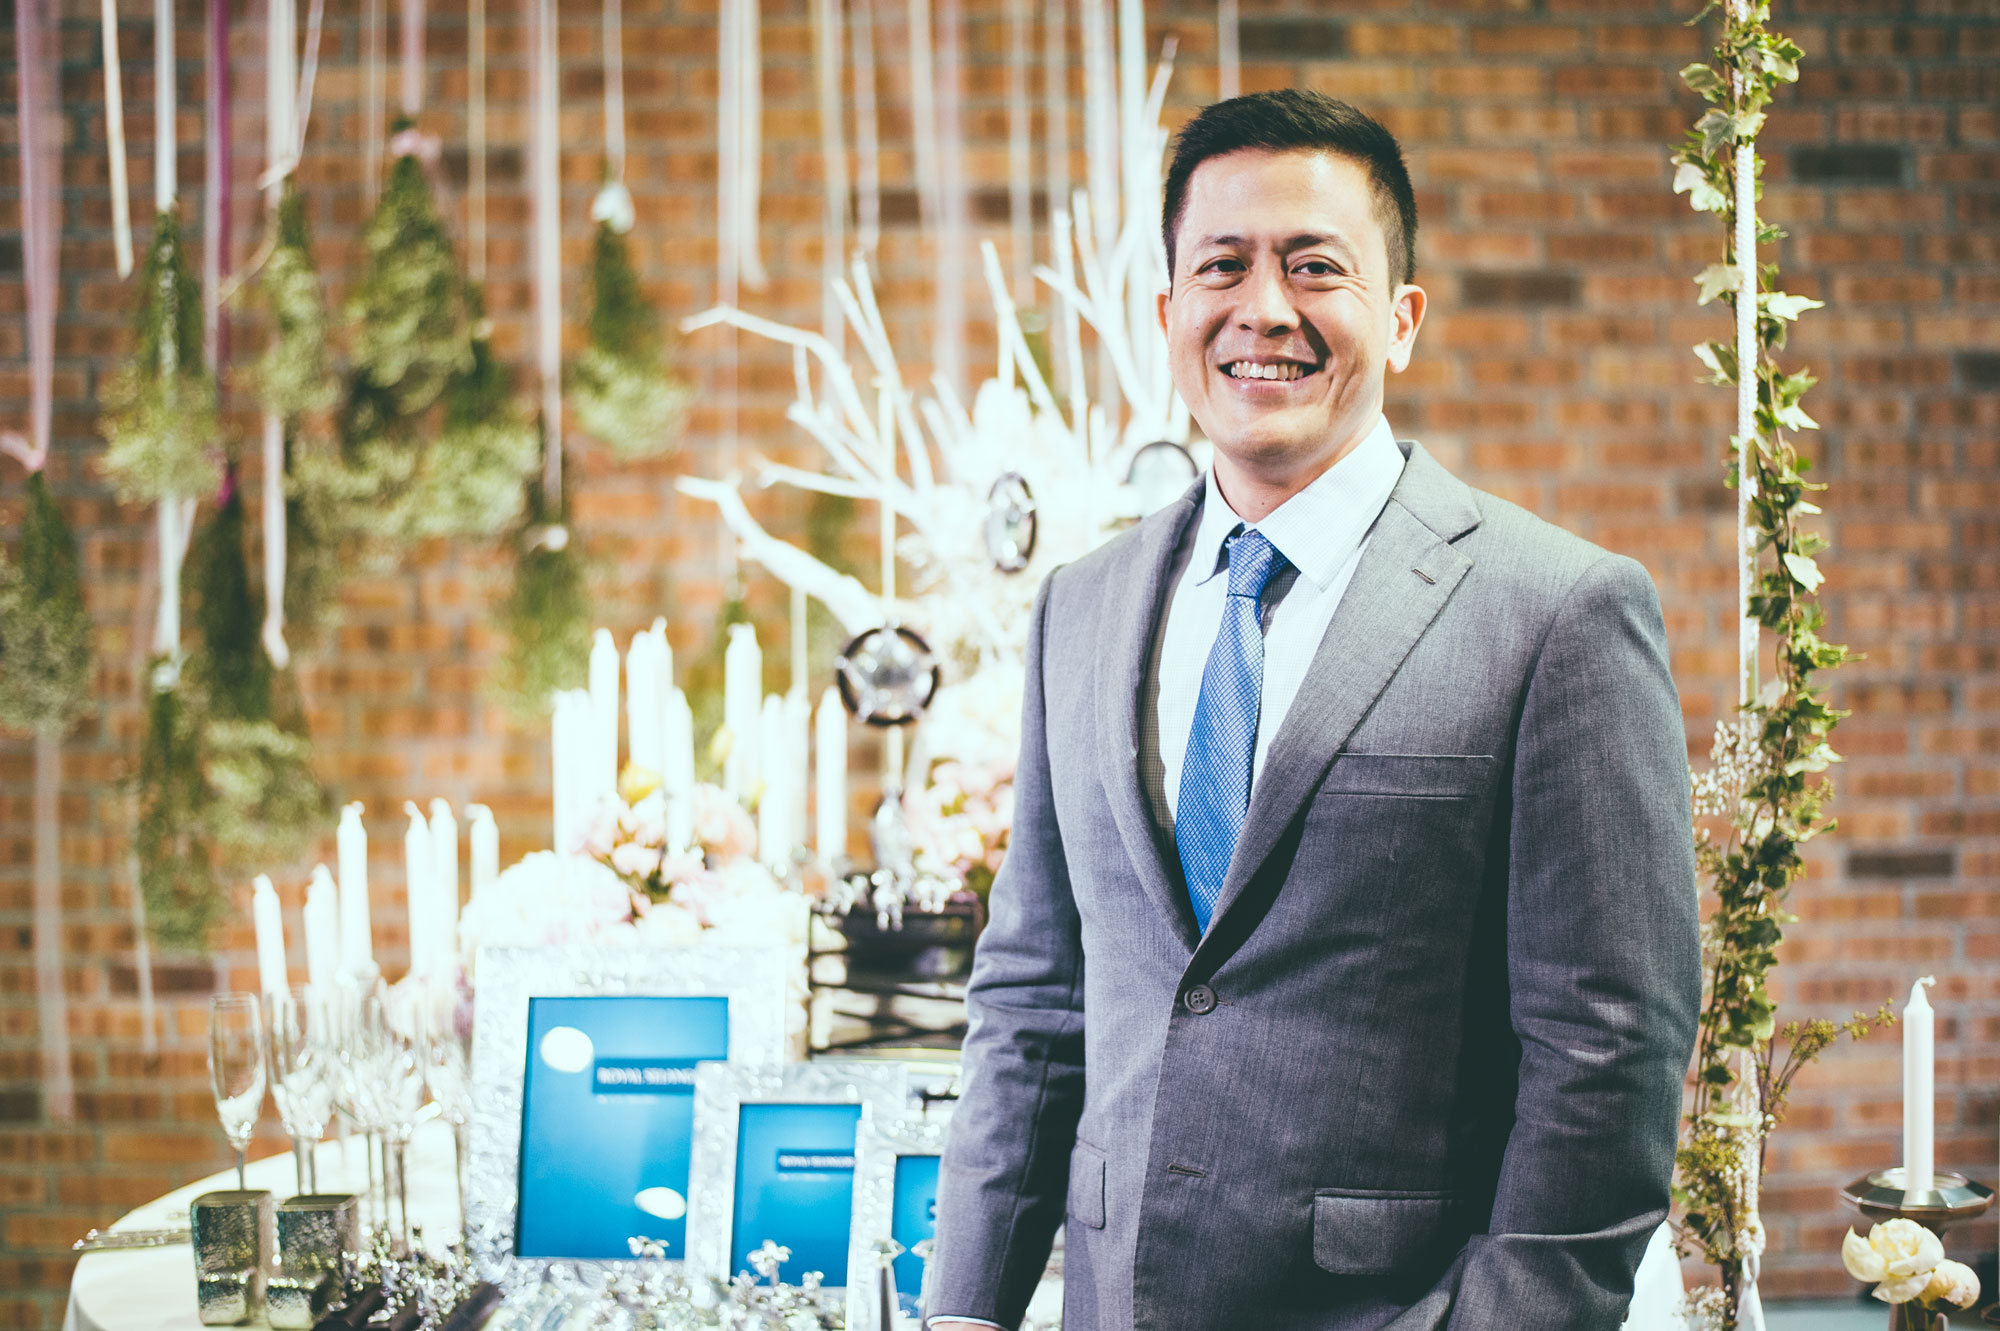 New Beginnings with Royal Selangor - Royal Selangor international Executive Director Yong Yoon Li